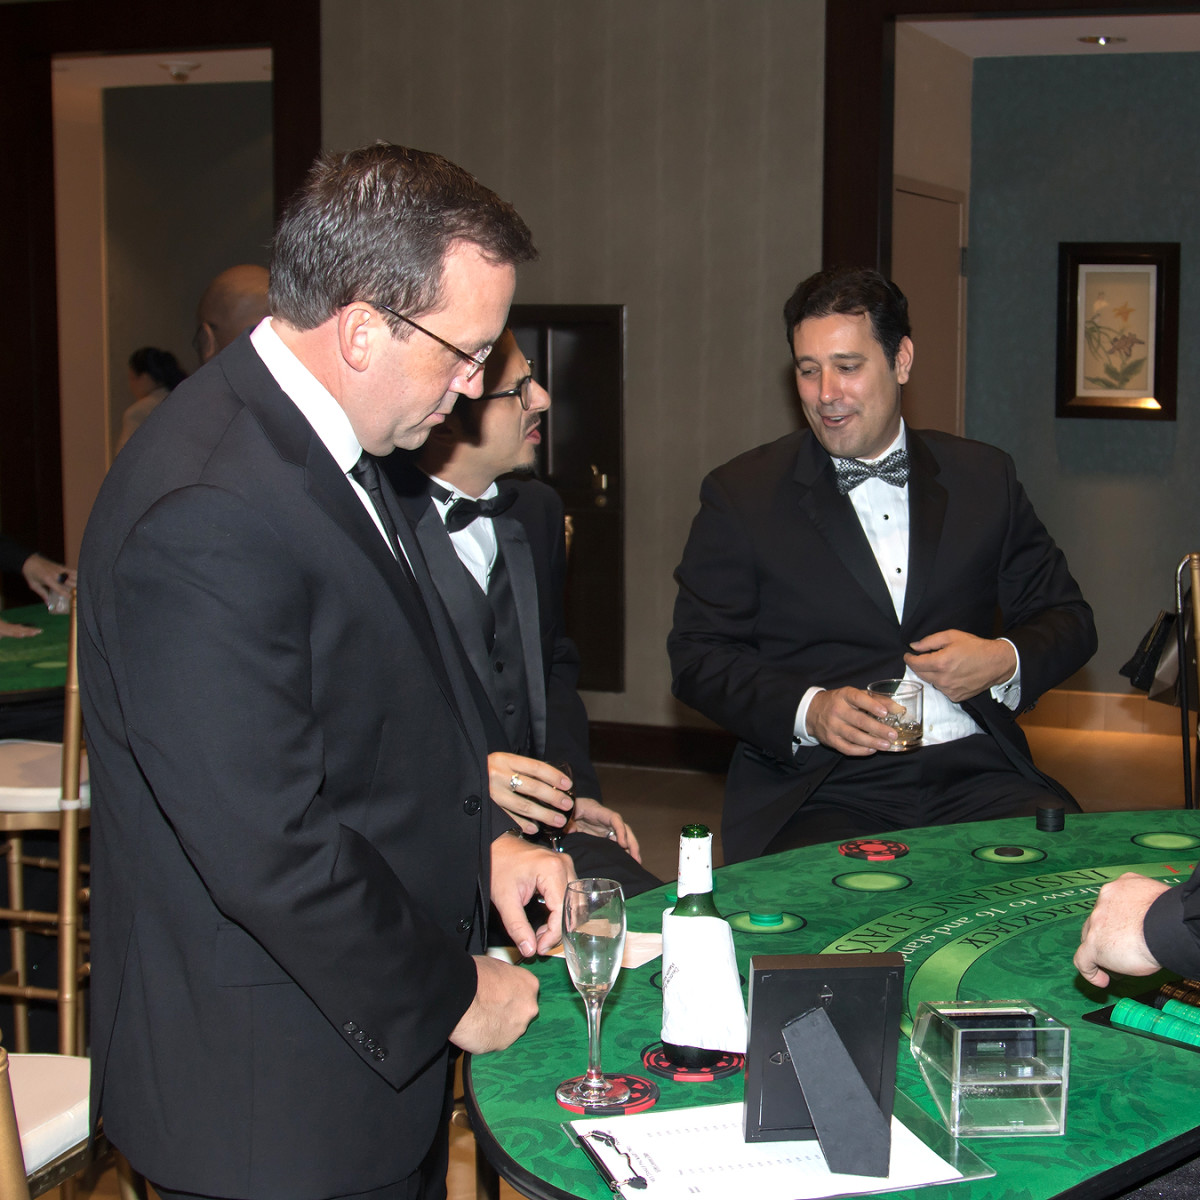 Casino games at Crystal Charity Ball 2016